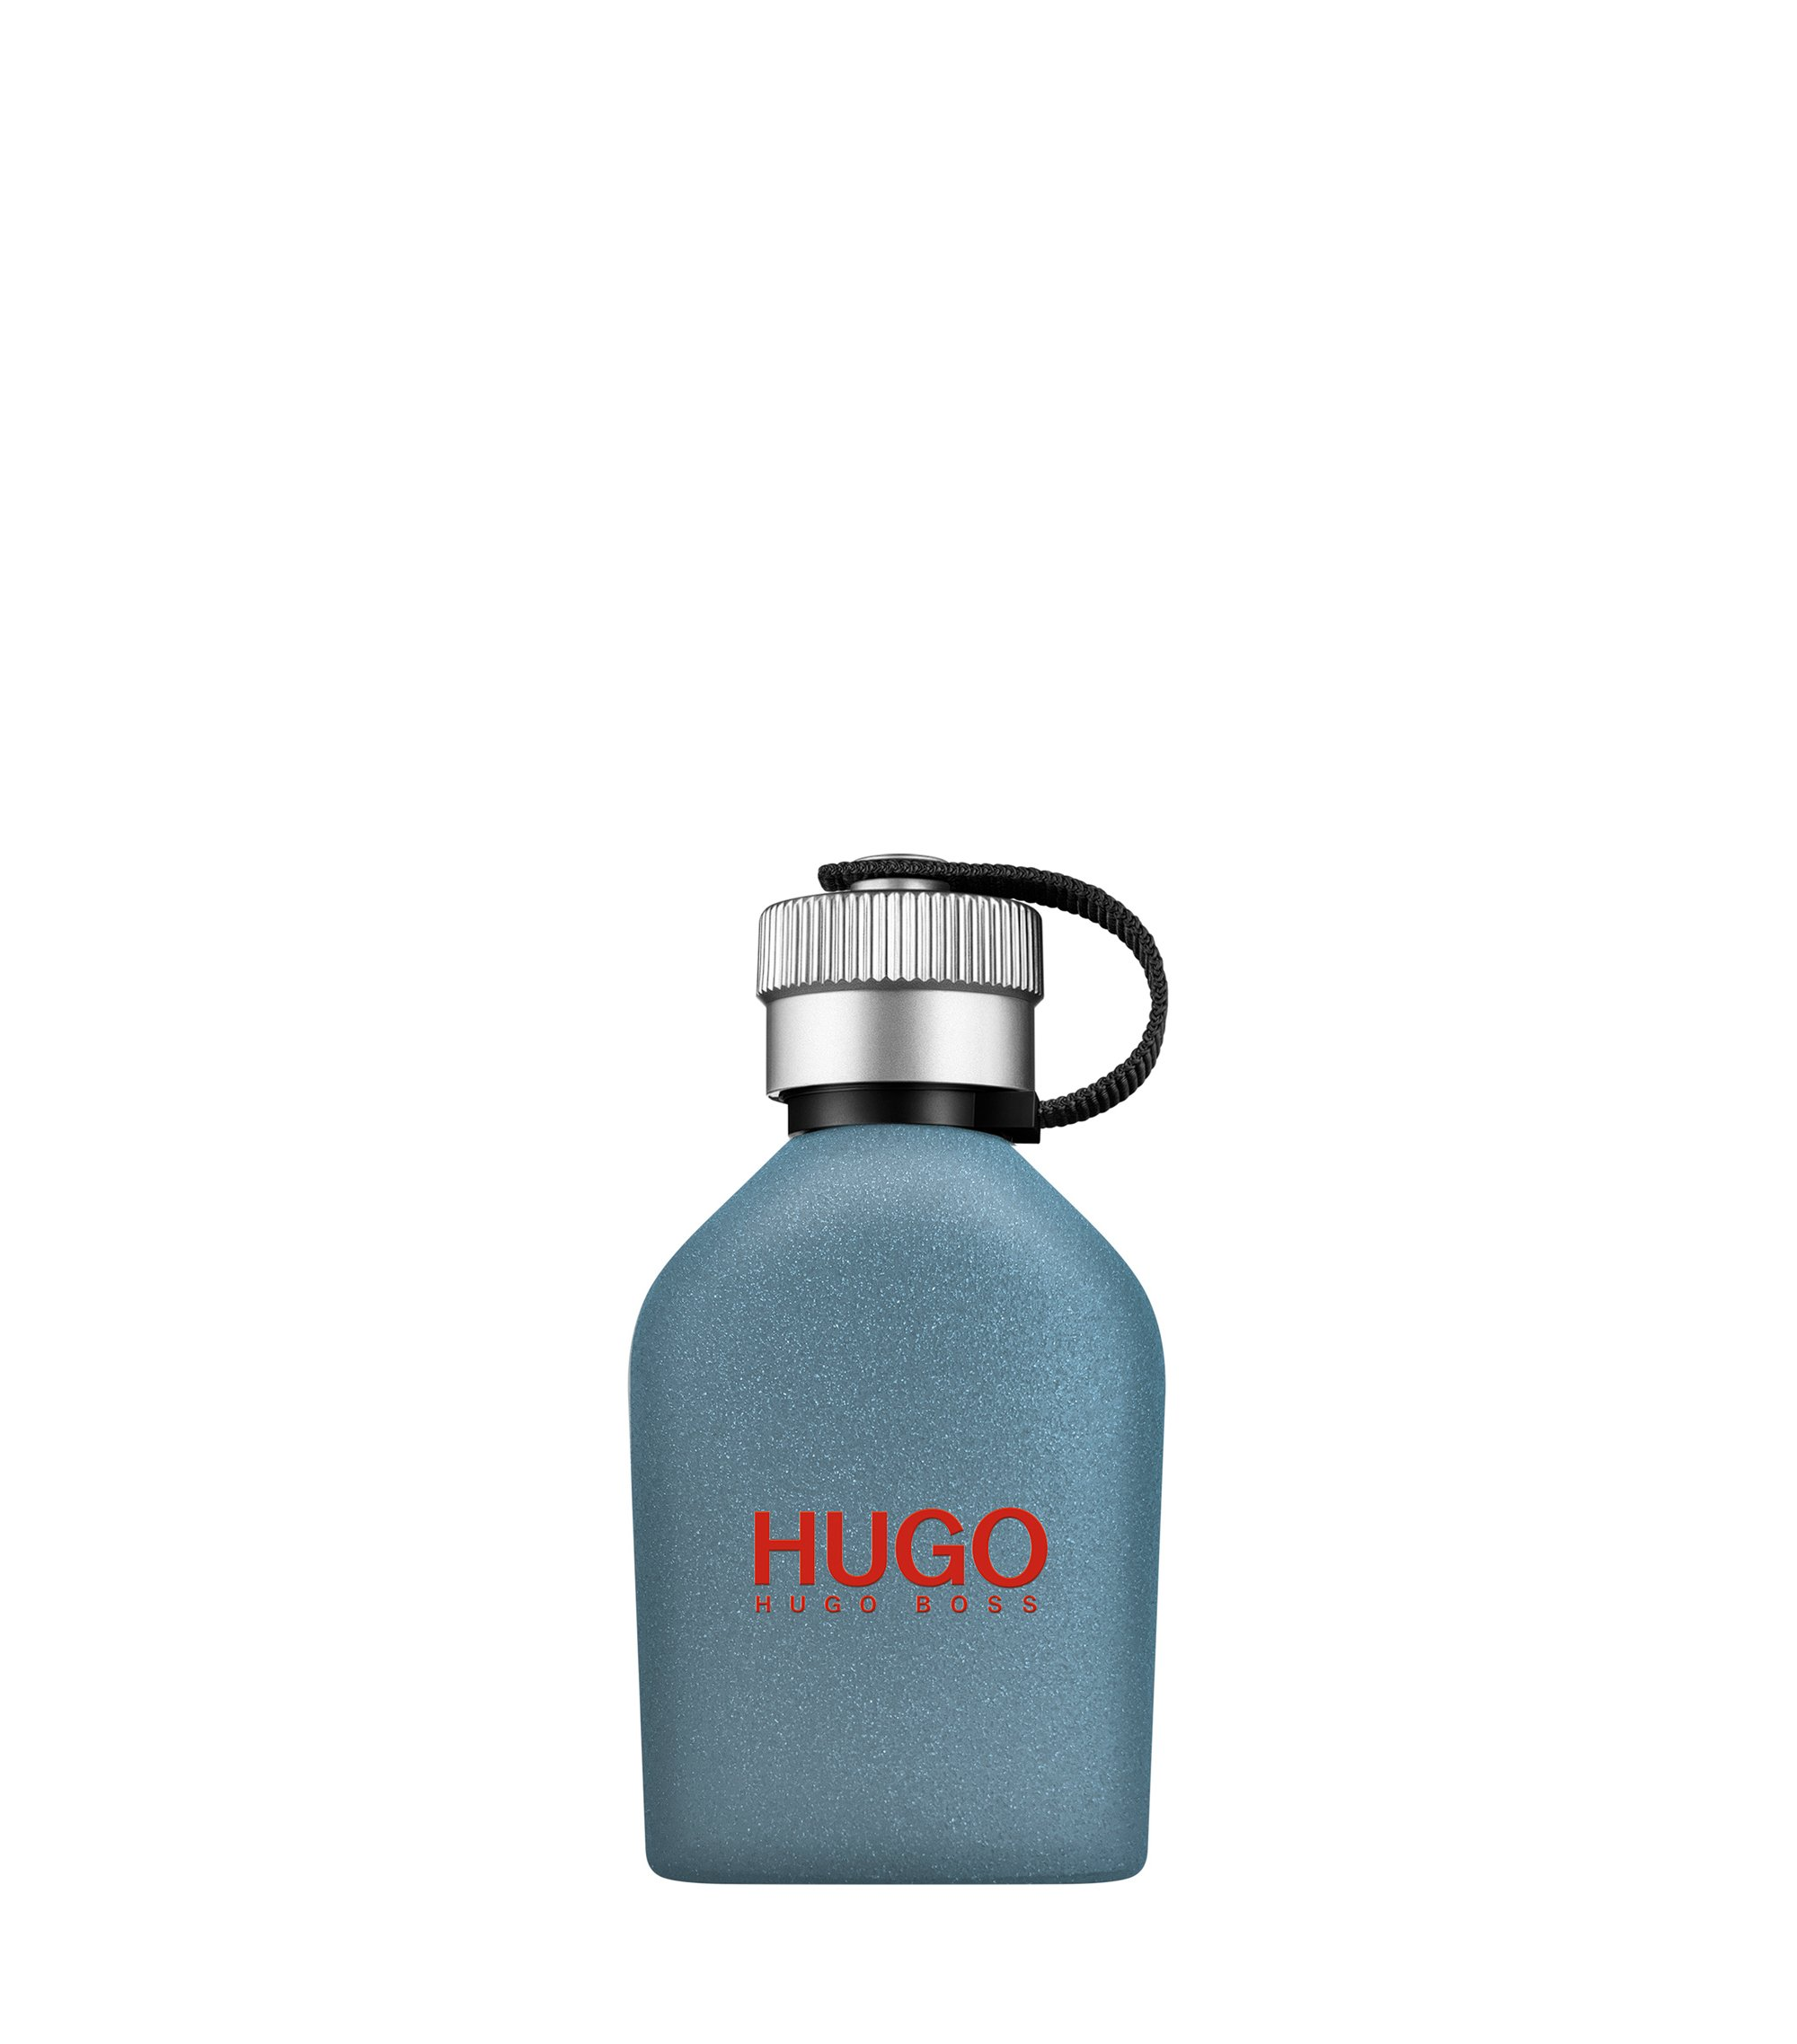 Eau de toilette HUGO Urban Journey de 75 ml, Assorted-Pre-Pack